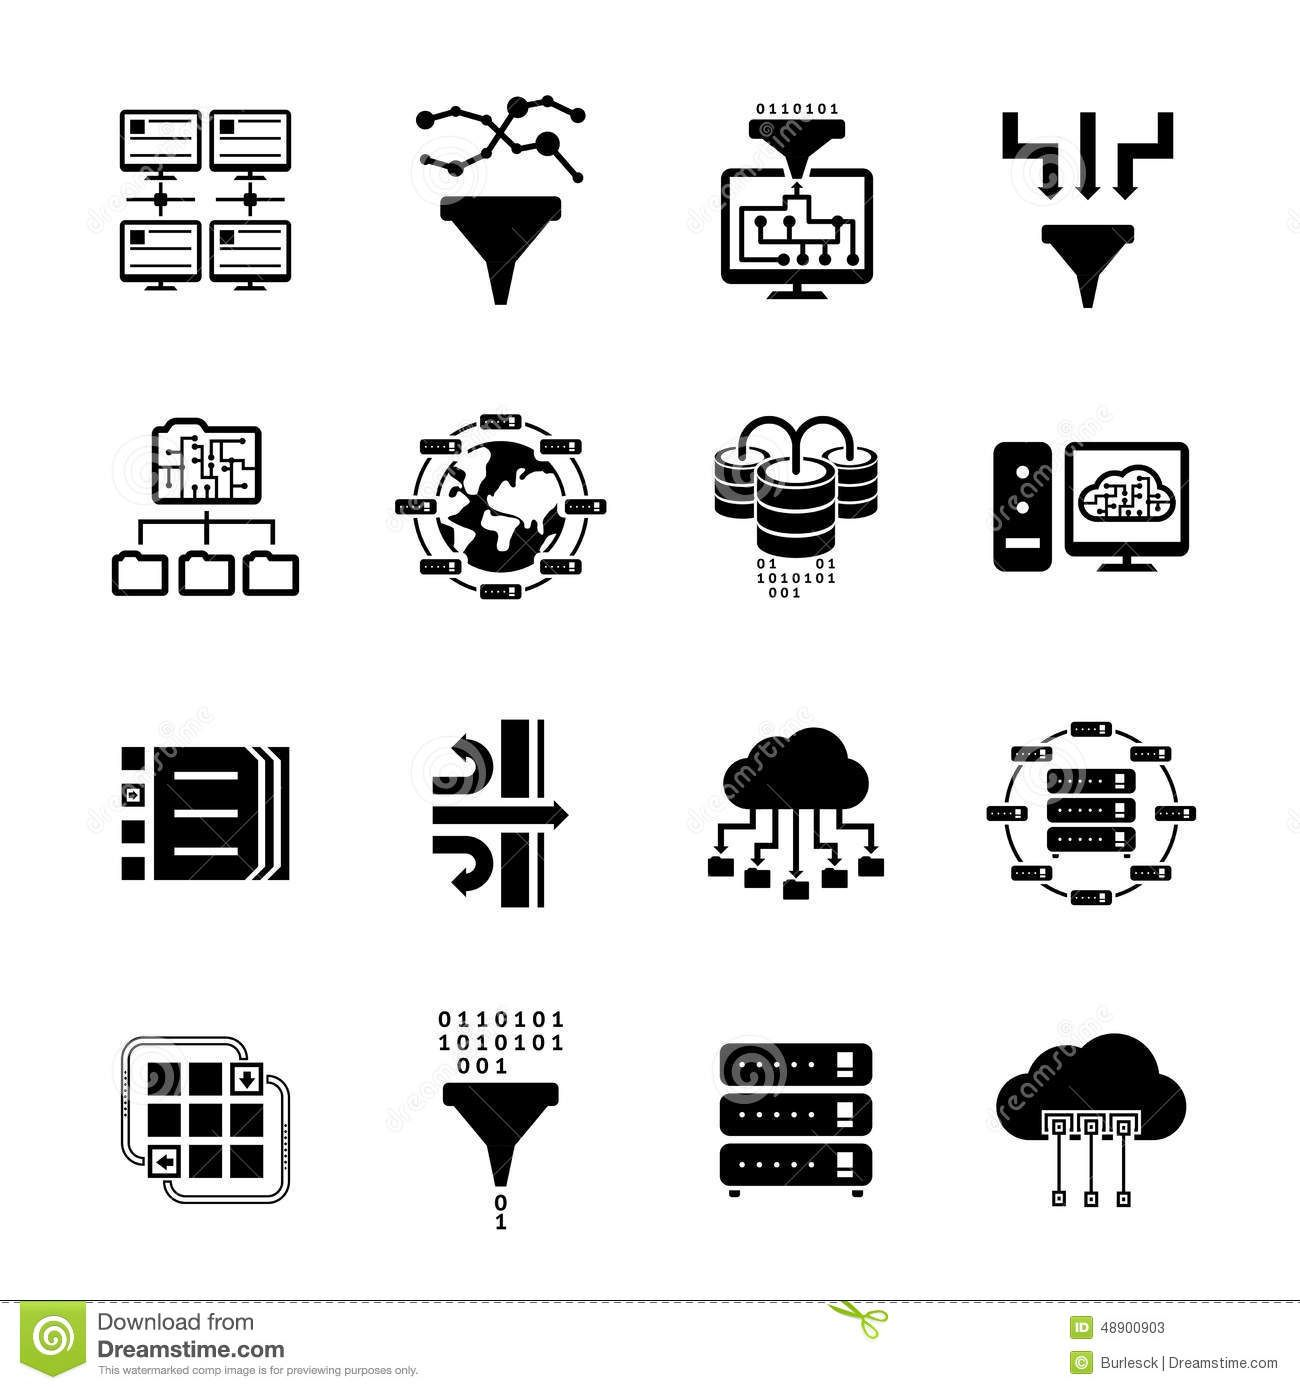 filter icons - Google Search | IoT | Pinterest